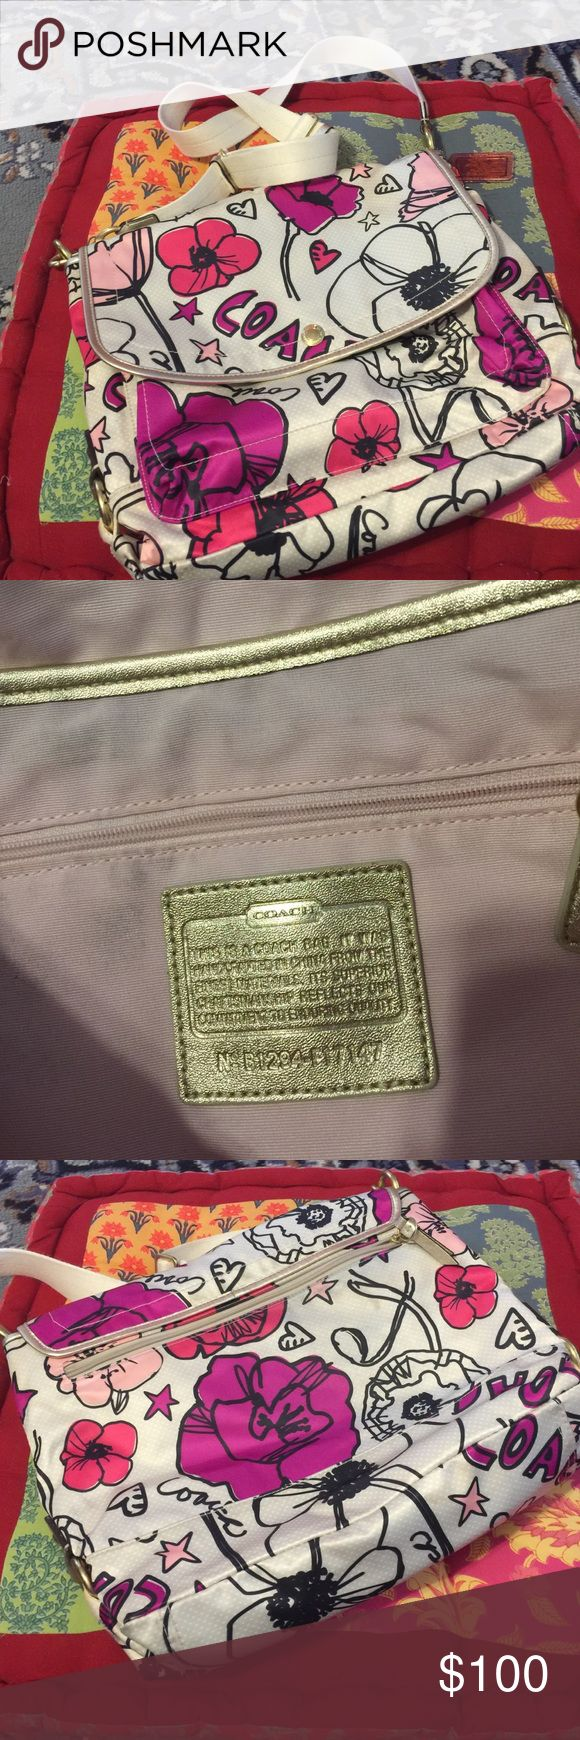 Poppy Coach Messenger bag Great item.  Poppy Coach Messenger Bag. Very Good Condition. Minor wear but you have to look close to see it! Coach Bags Shoulder Bags